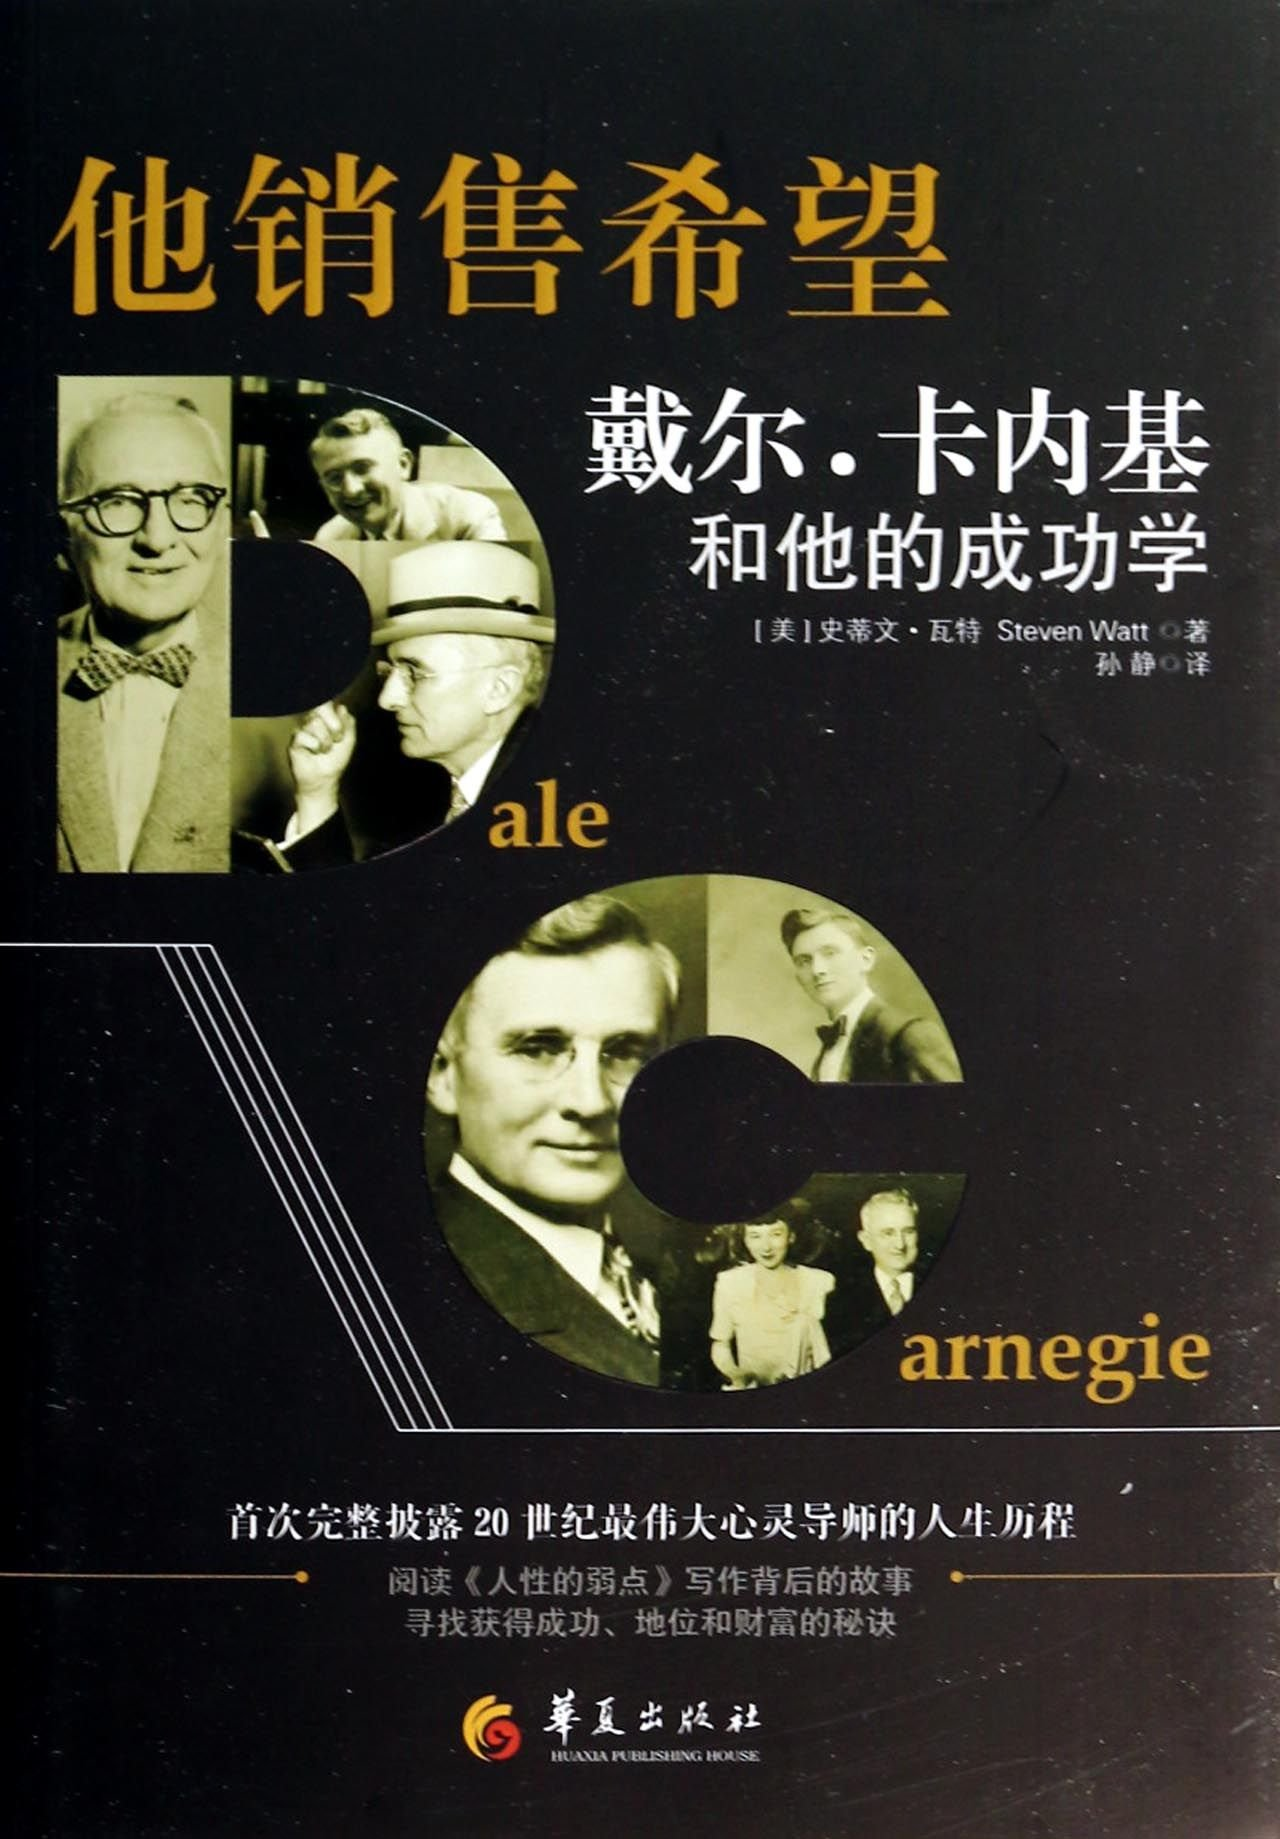 Read Online He sales hope: dale Carnegie and his success(Chinese Edition) pdf